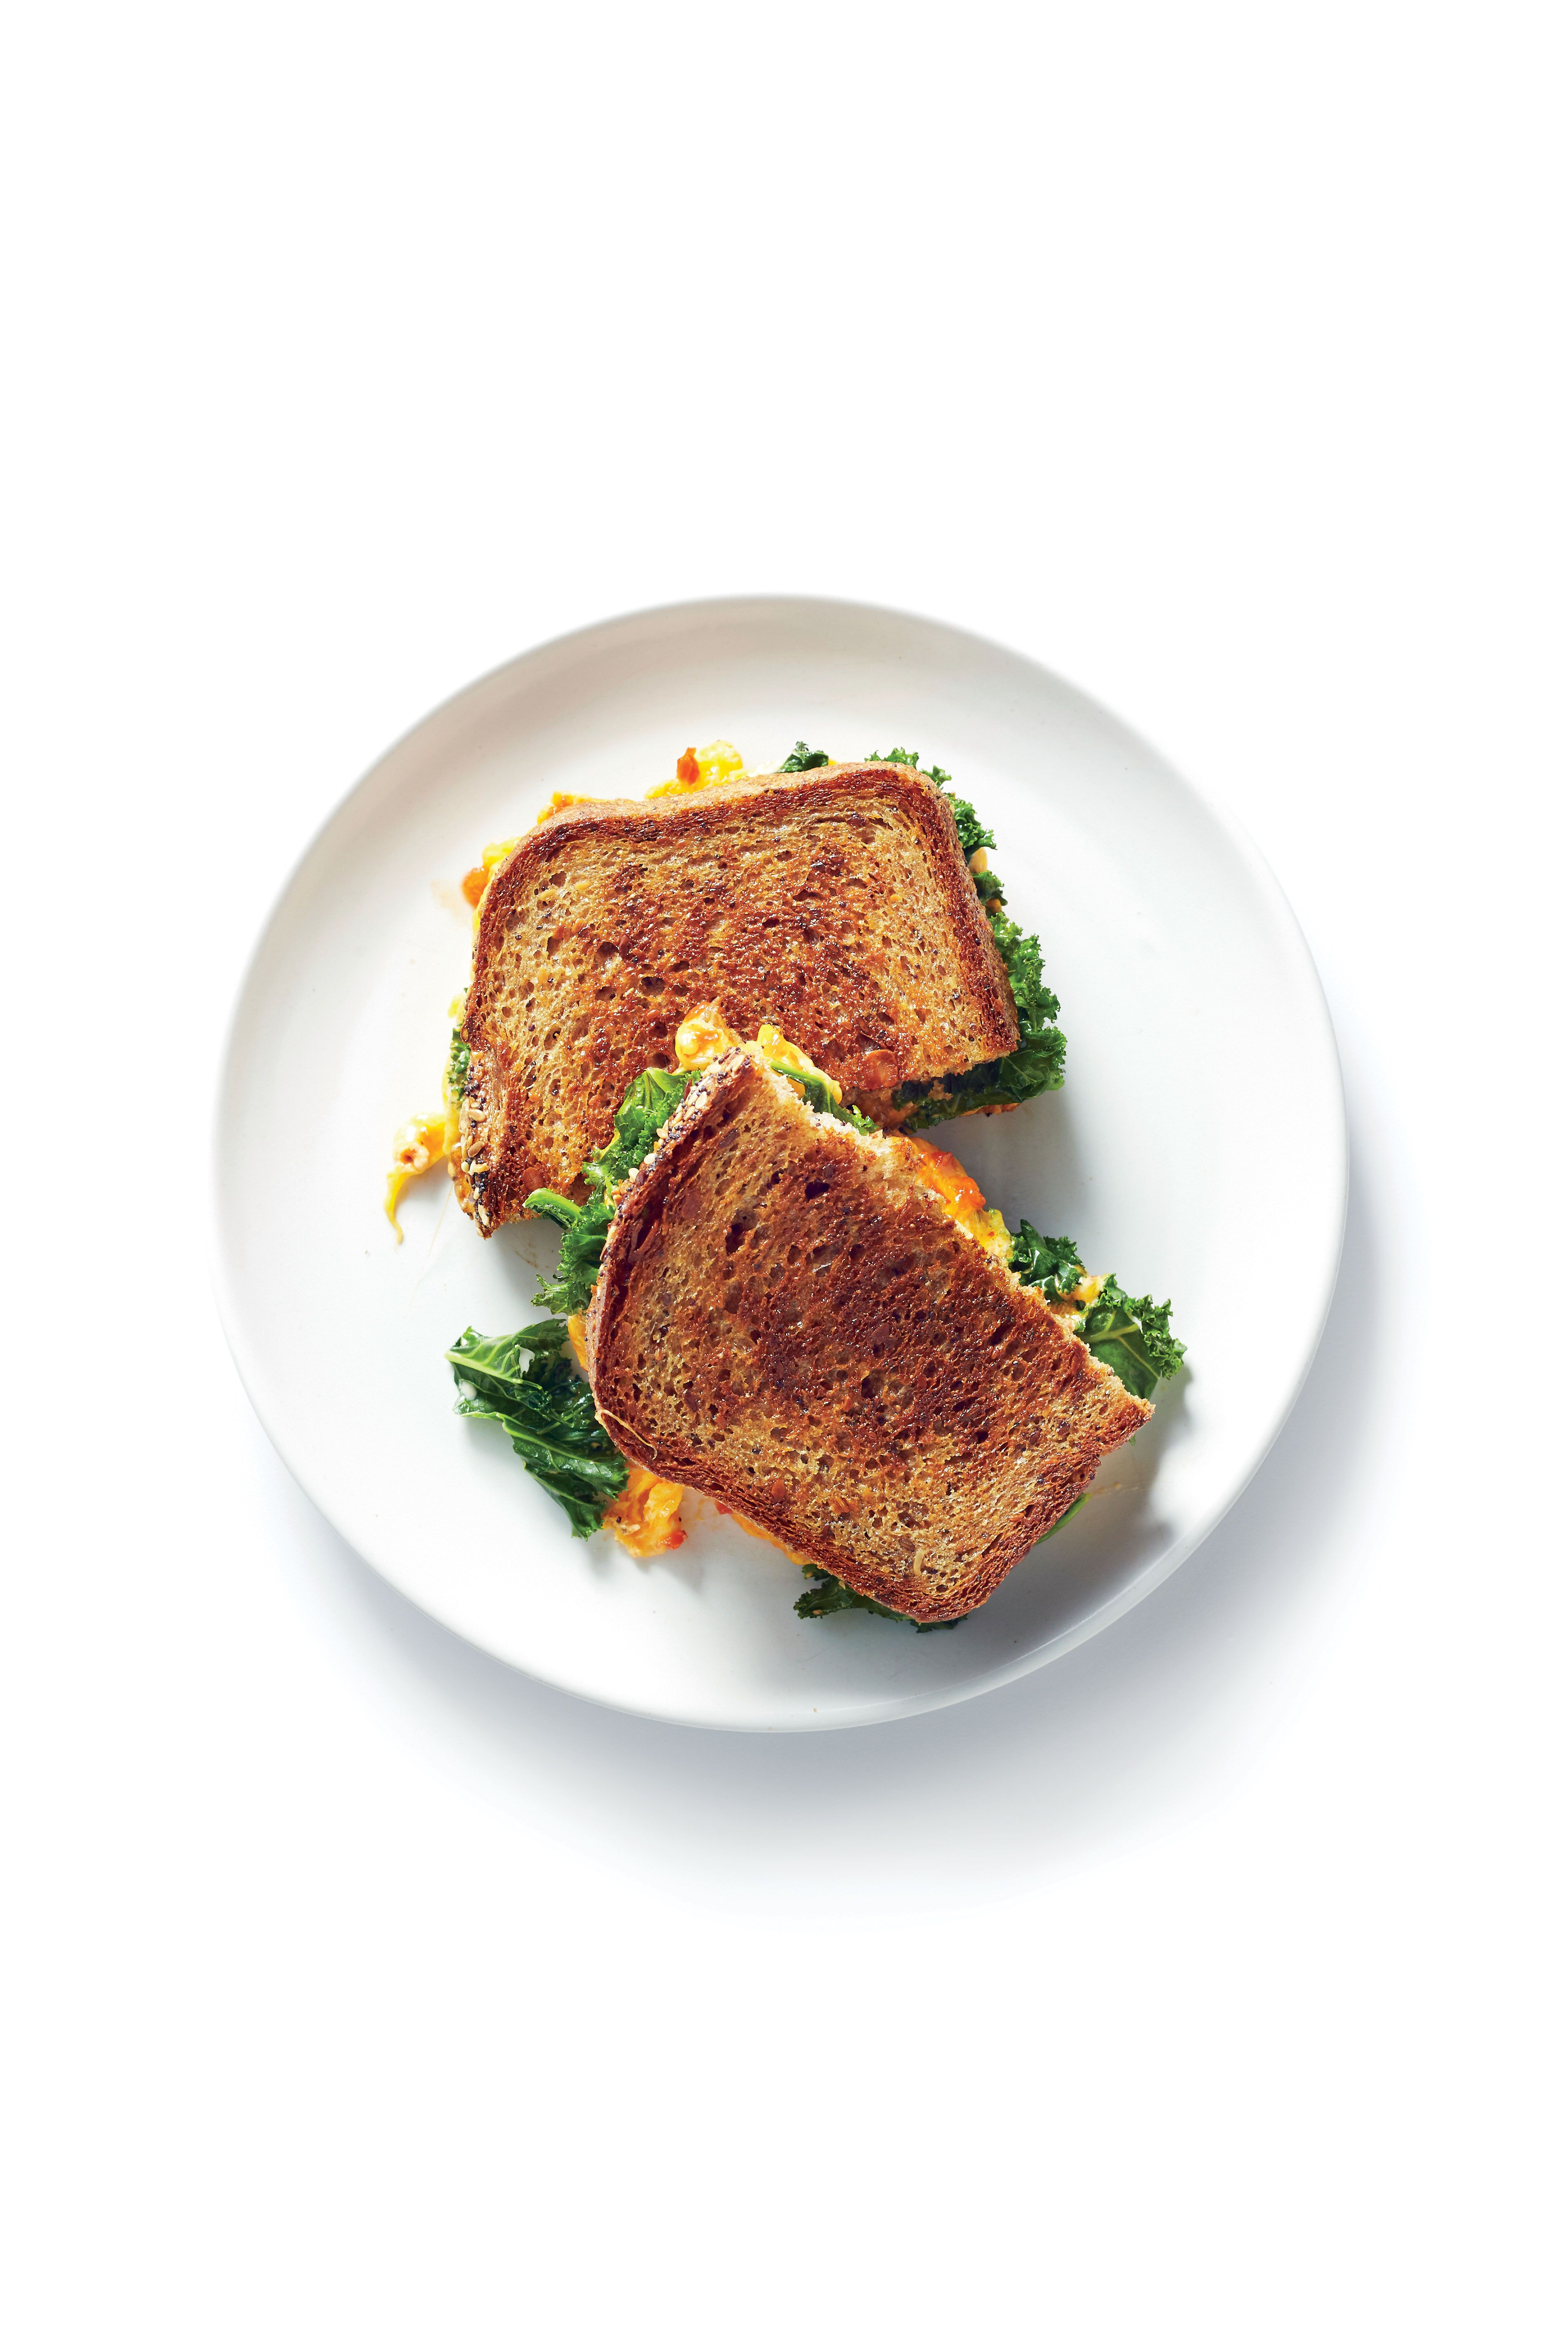 Kicky Grilled Cheeses - Healthy Sandwiches Recipes - Cooking Light